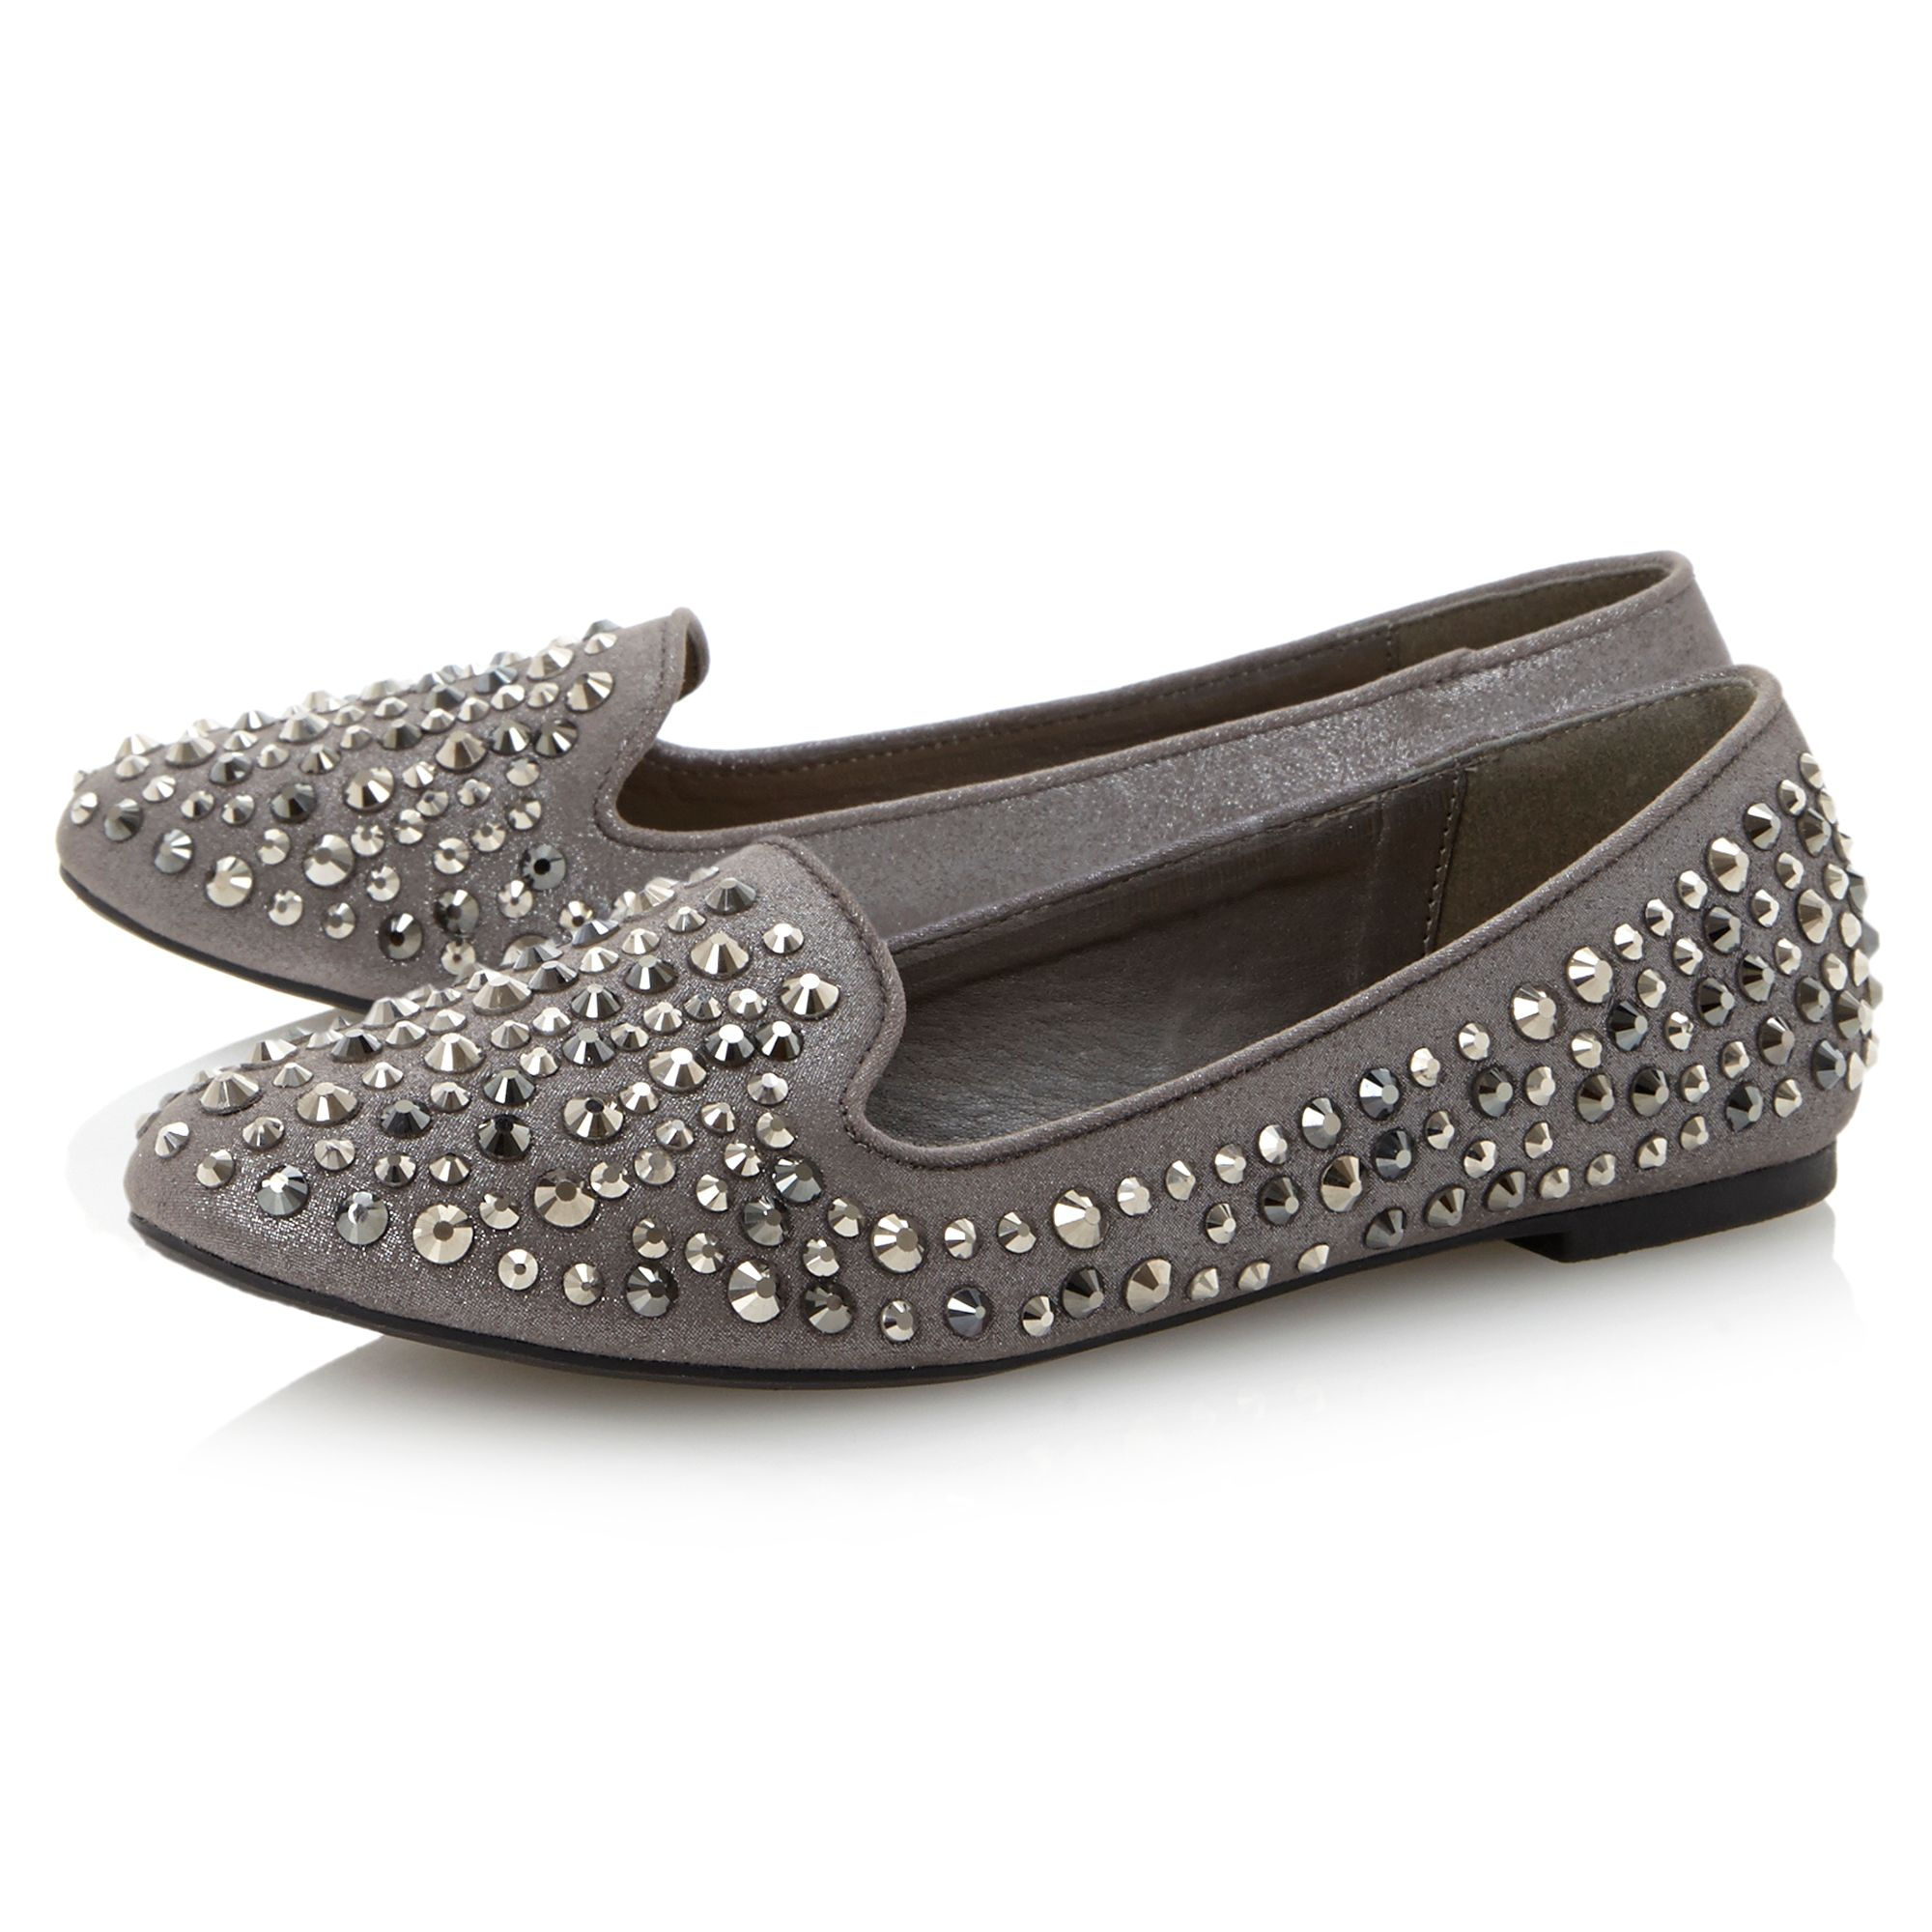 Melika embellished slipper shoes